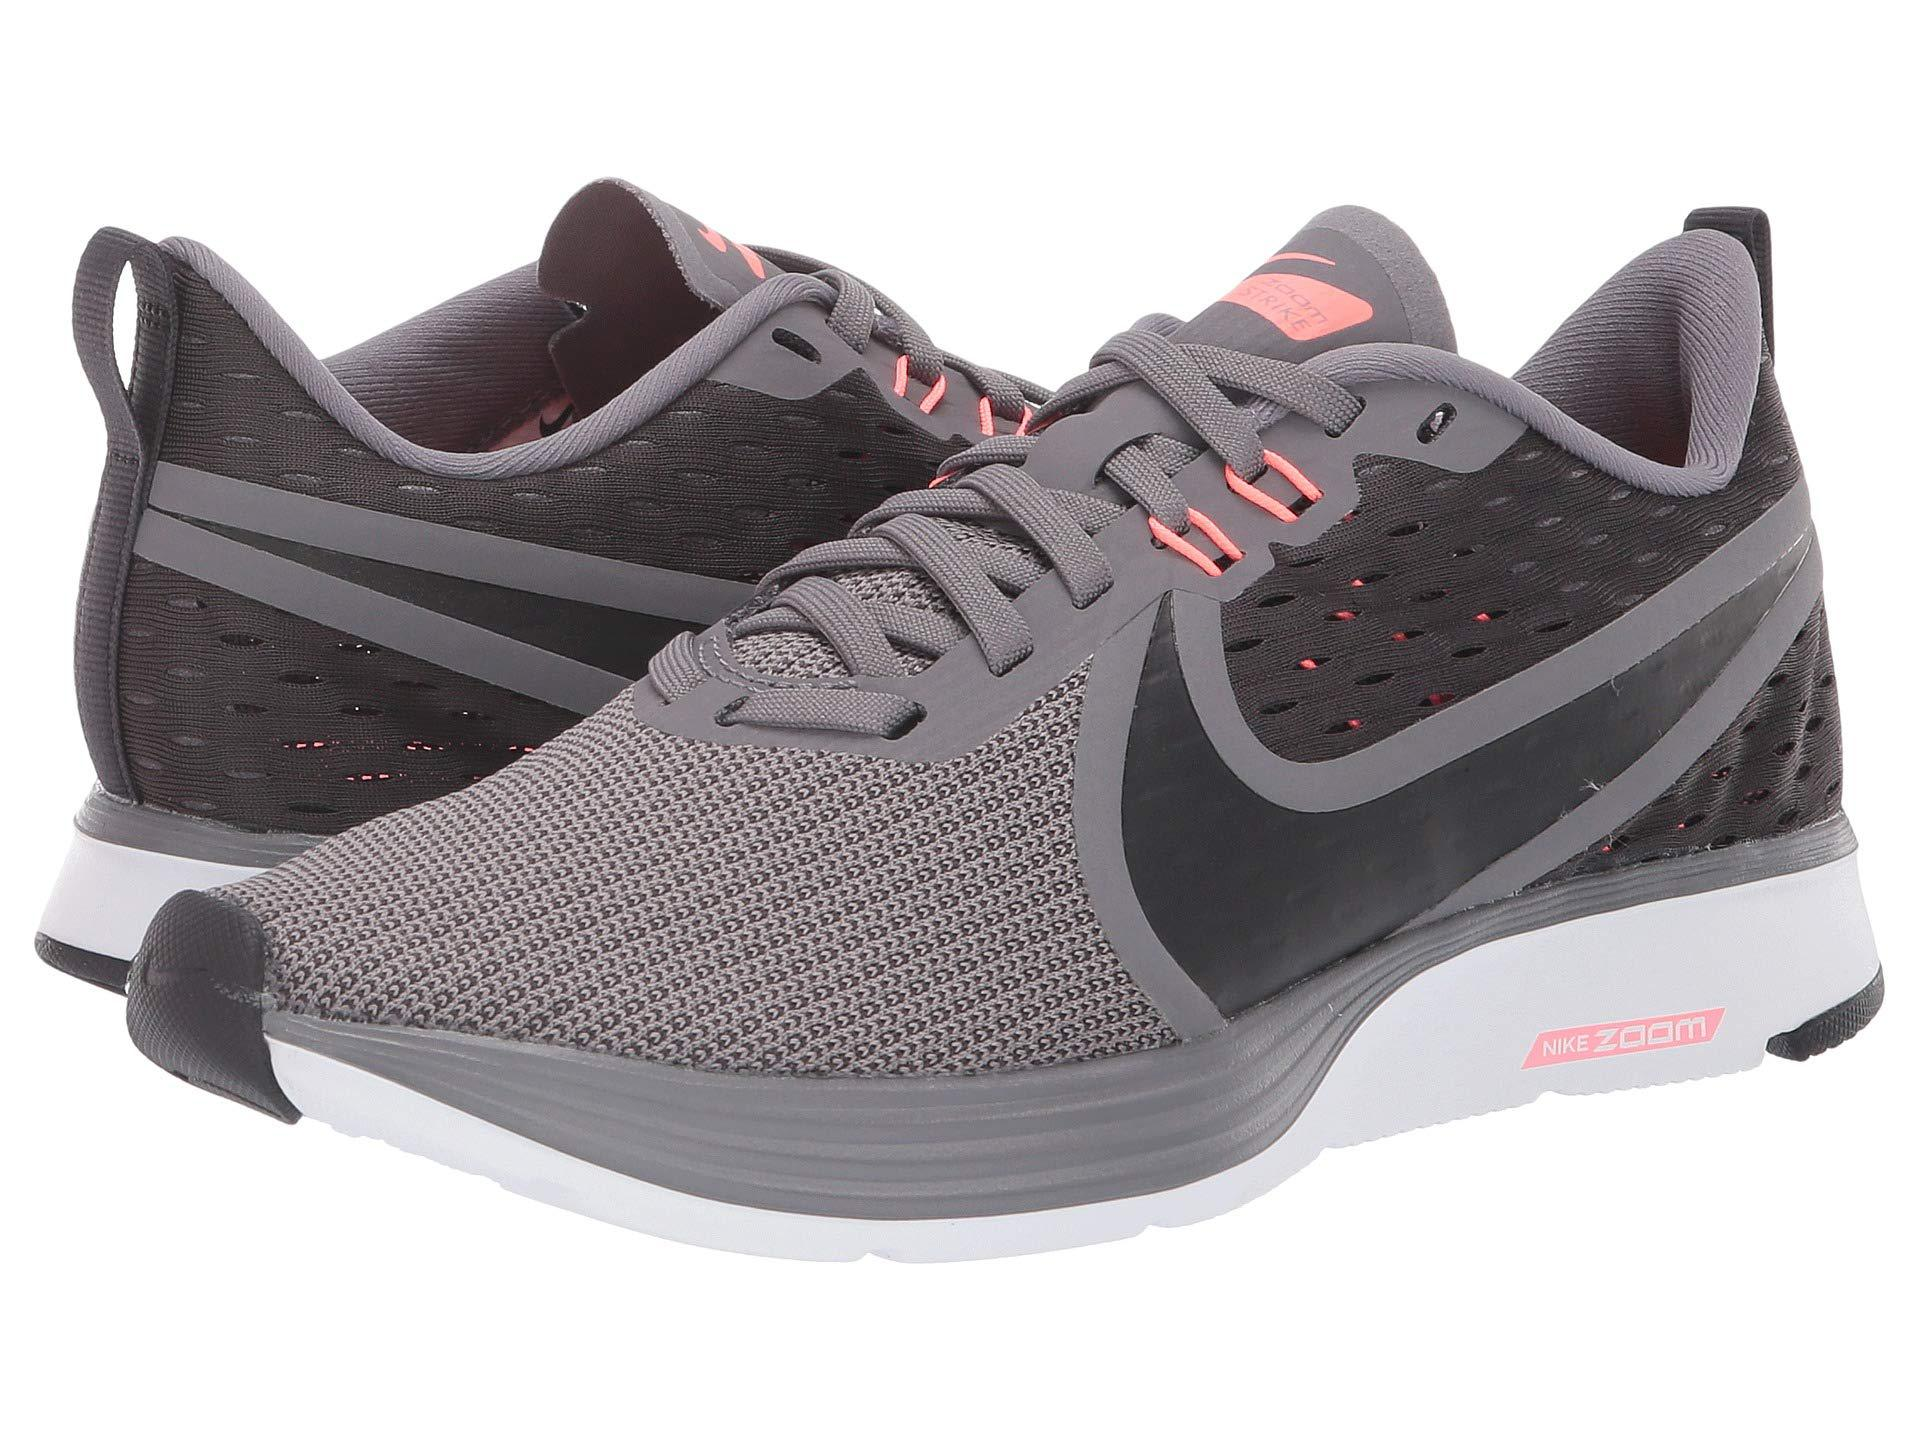 053f82af3900 Nike. Gray Zoom Strike 2 (gunsmoke oil Grey lava Glow white) Women s  Running Shoes